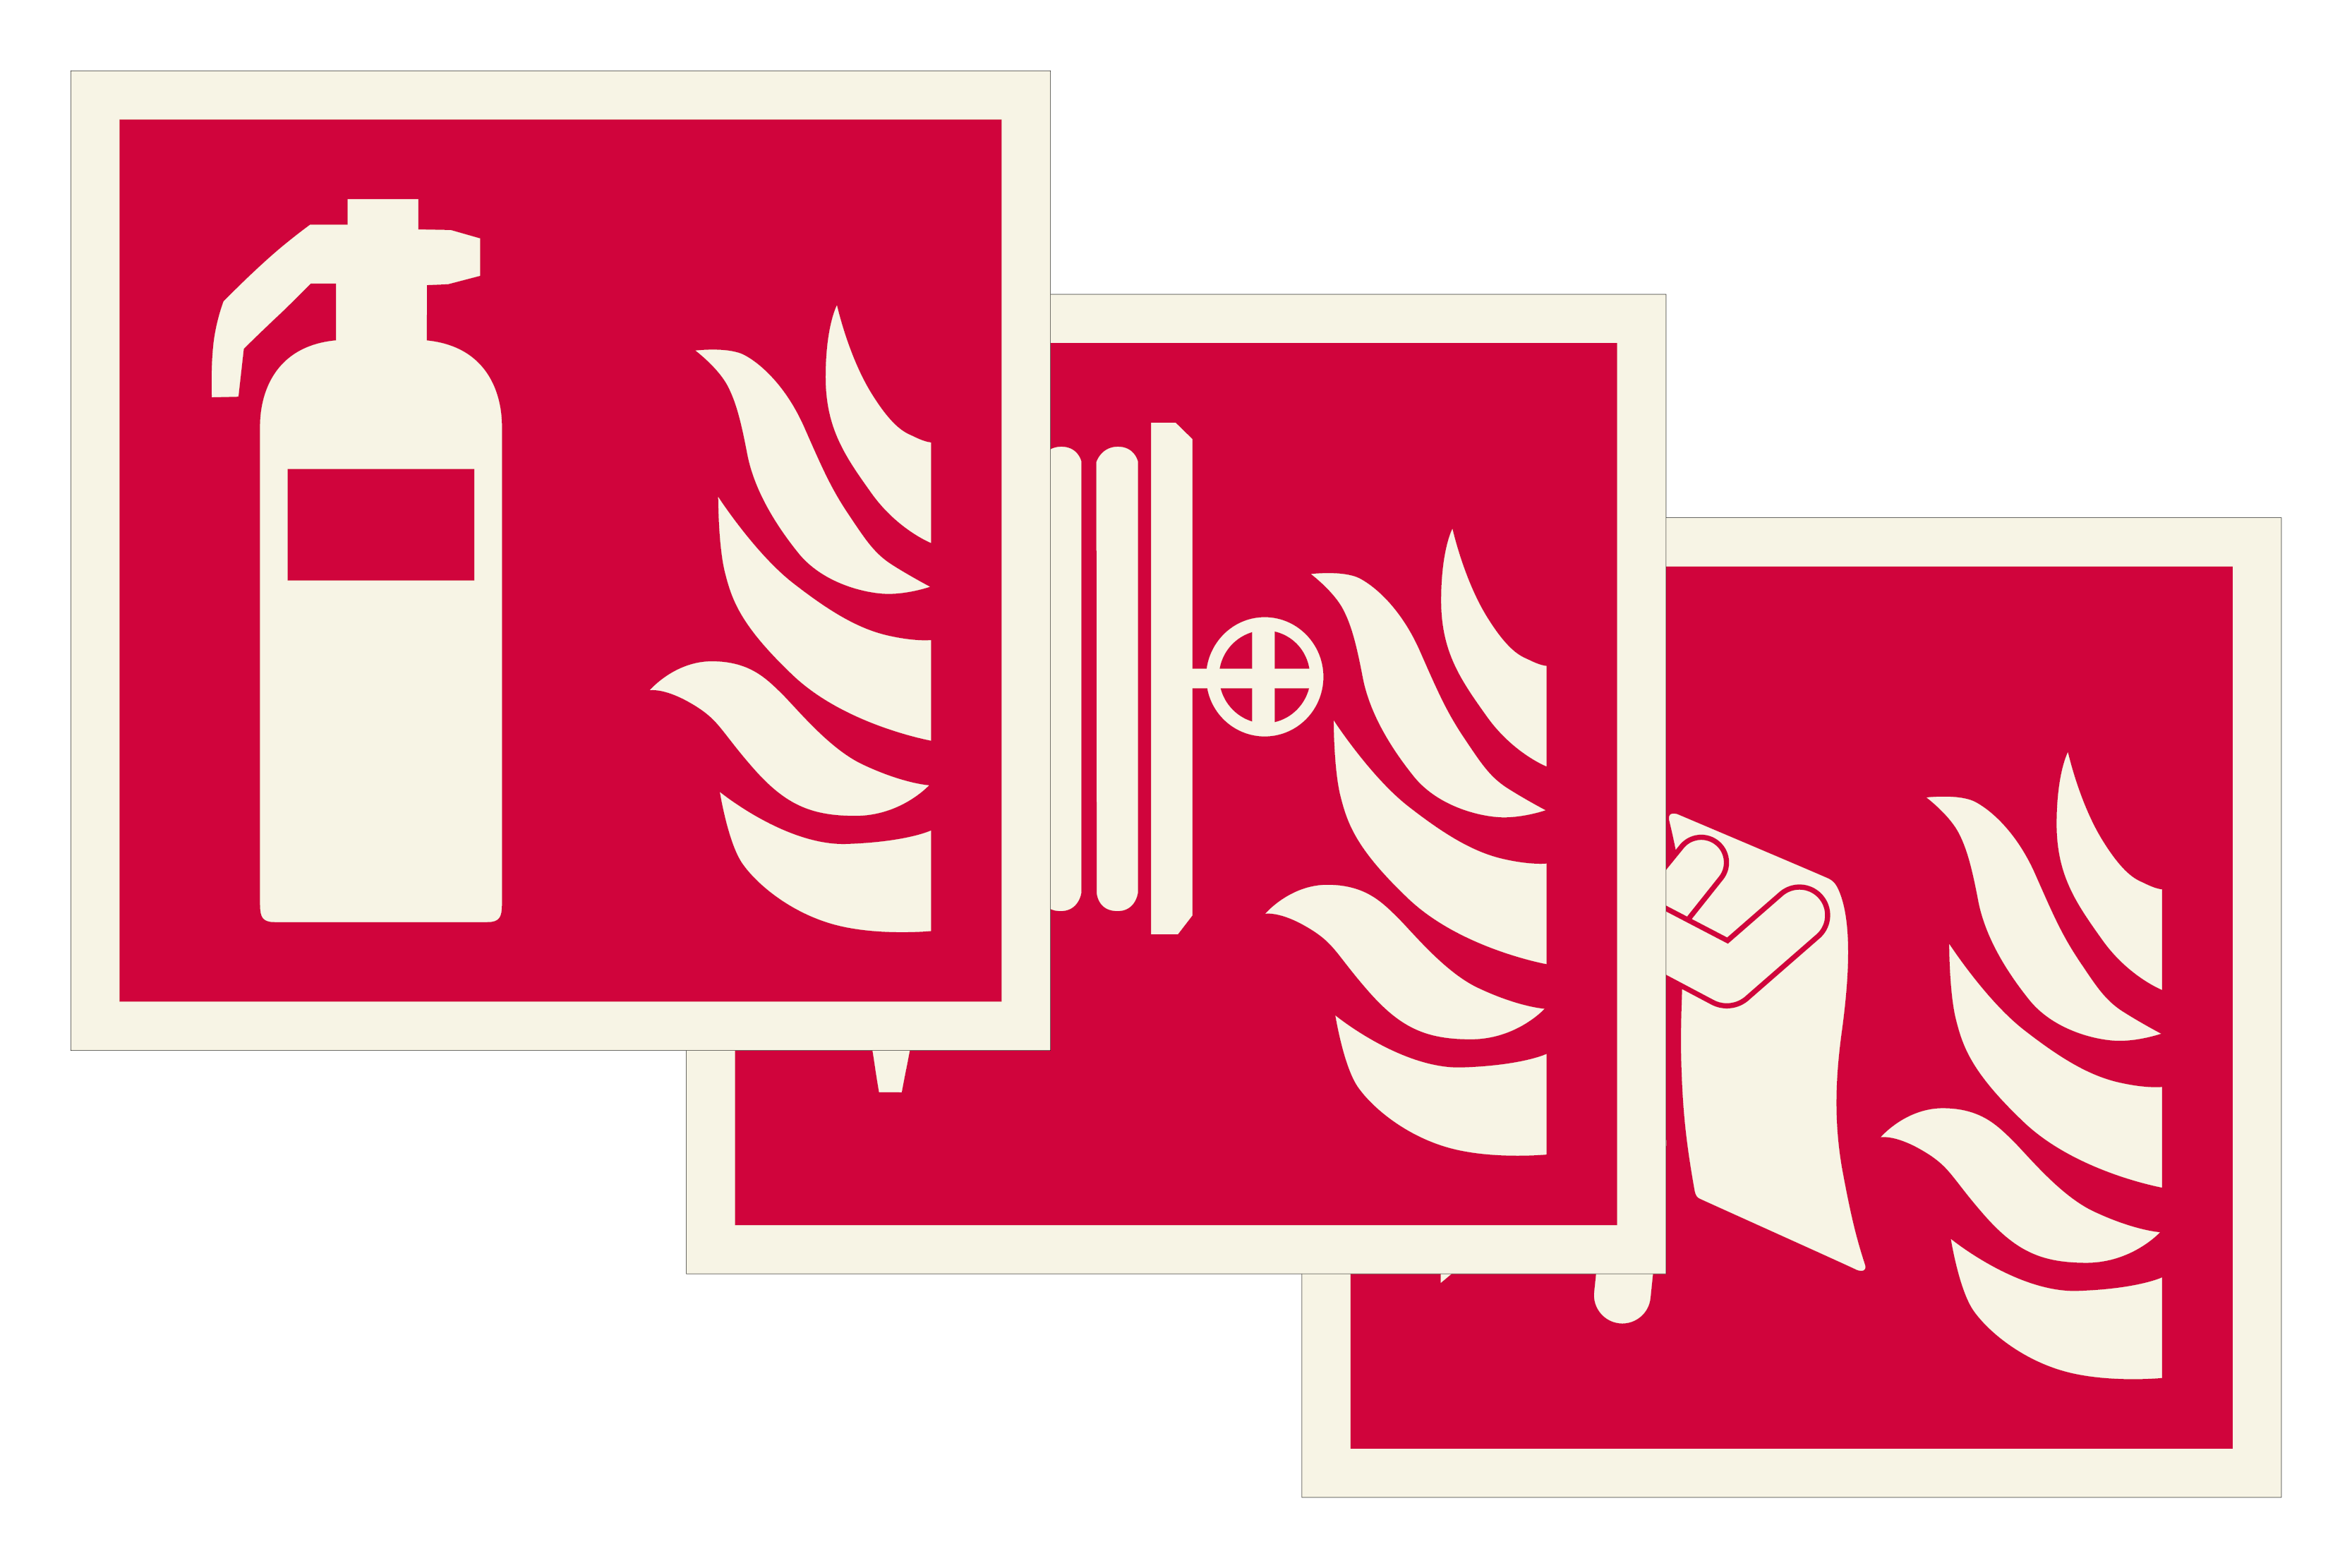 Fire Fighting Signs Image